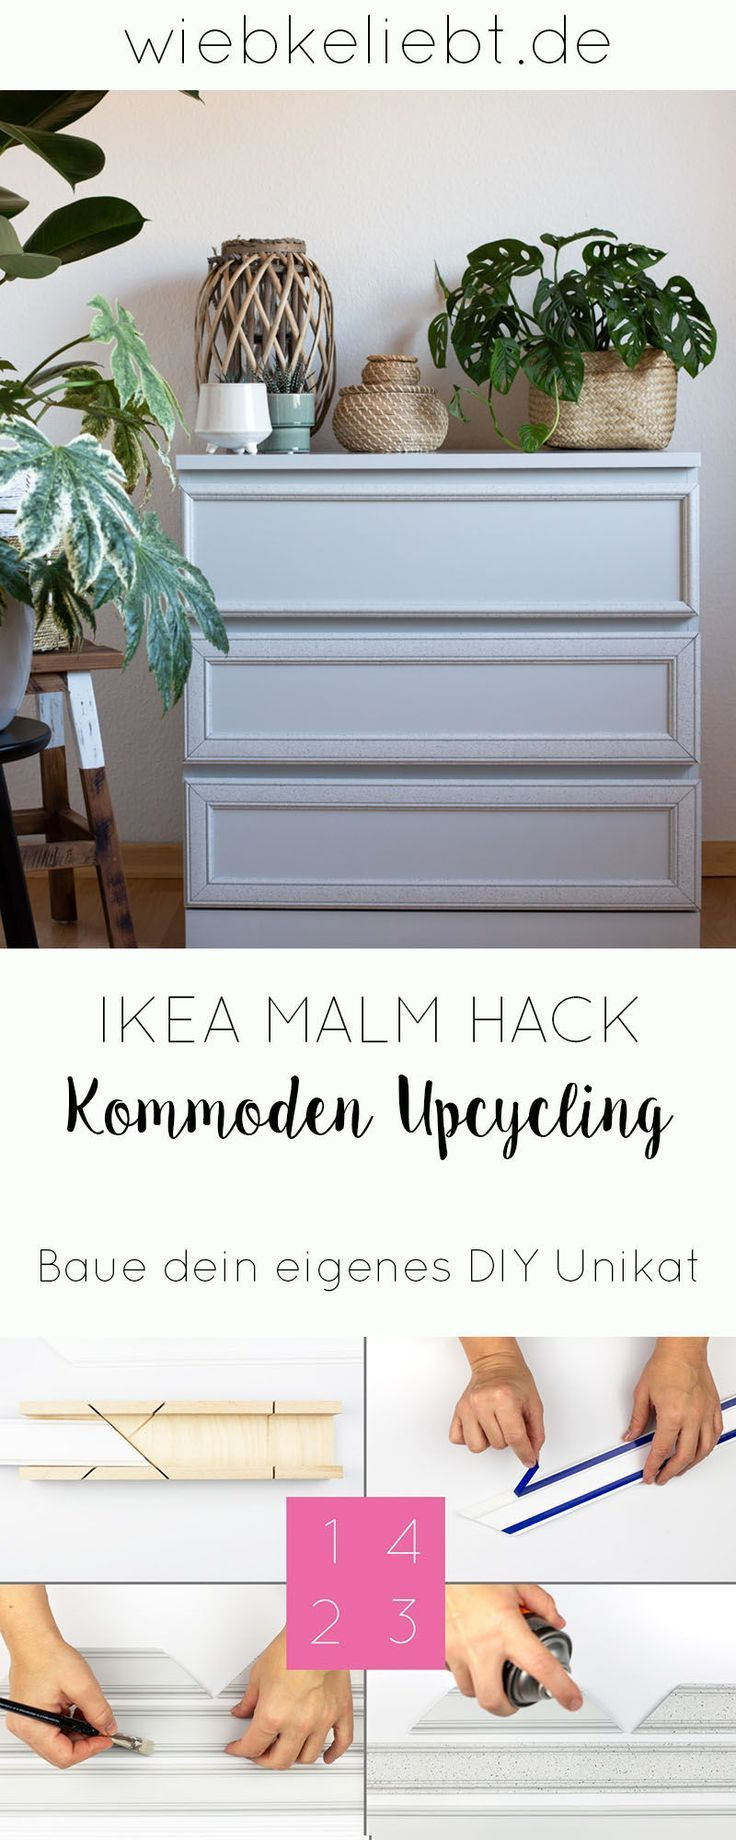 How To Raise The Malm Bed Finally Ikea Hackers Ikea Malm Bed Malm Bed Ikea Malm